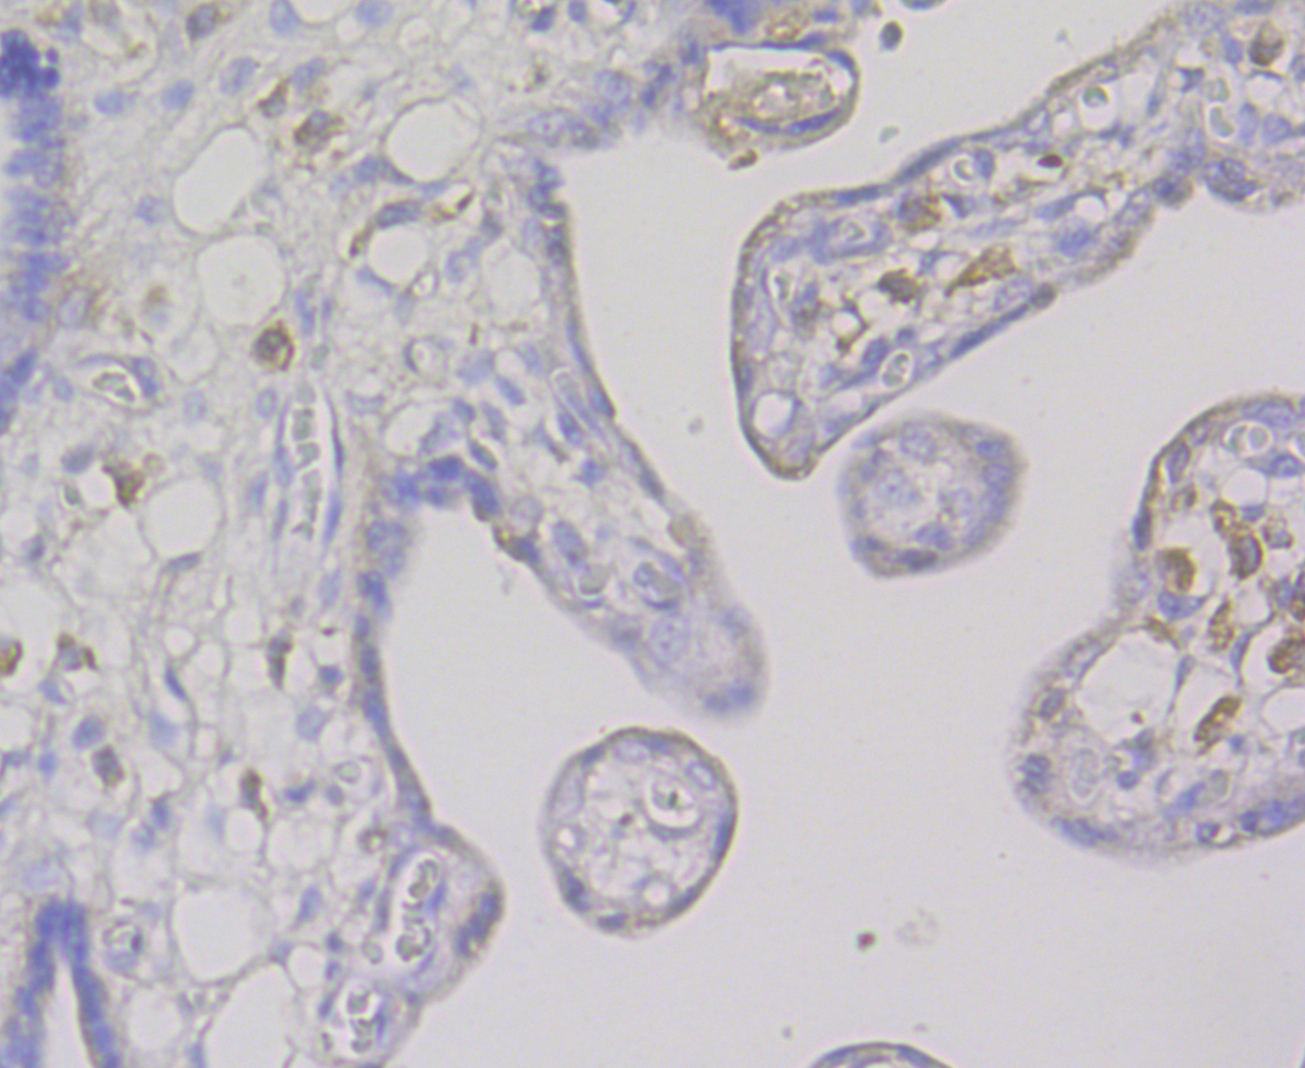 Immunohistochemical analysis of paraffin-embedded human placenta tissue using anti-CD163 antibody. The section was pre-treated using heat mediated antigen retrieval with Tris-EDTA buffer (pH 8.0-8.4) for 20 minutes.The tissues were blocked in 5% BSA for 30 minutes at room temperature, washed with ddH2O and PBS, and then probed with the antibody (ER1804-03) at 1/200 dilution, for 30 minutes at room temperature and detected using an HRP conjugated compact polymer system. DAB was used as the chromogen. Counter stained with hematoxylin and mounted with DPX.